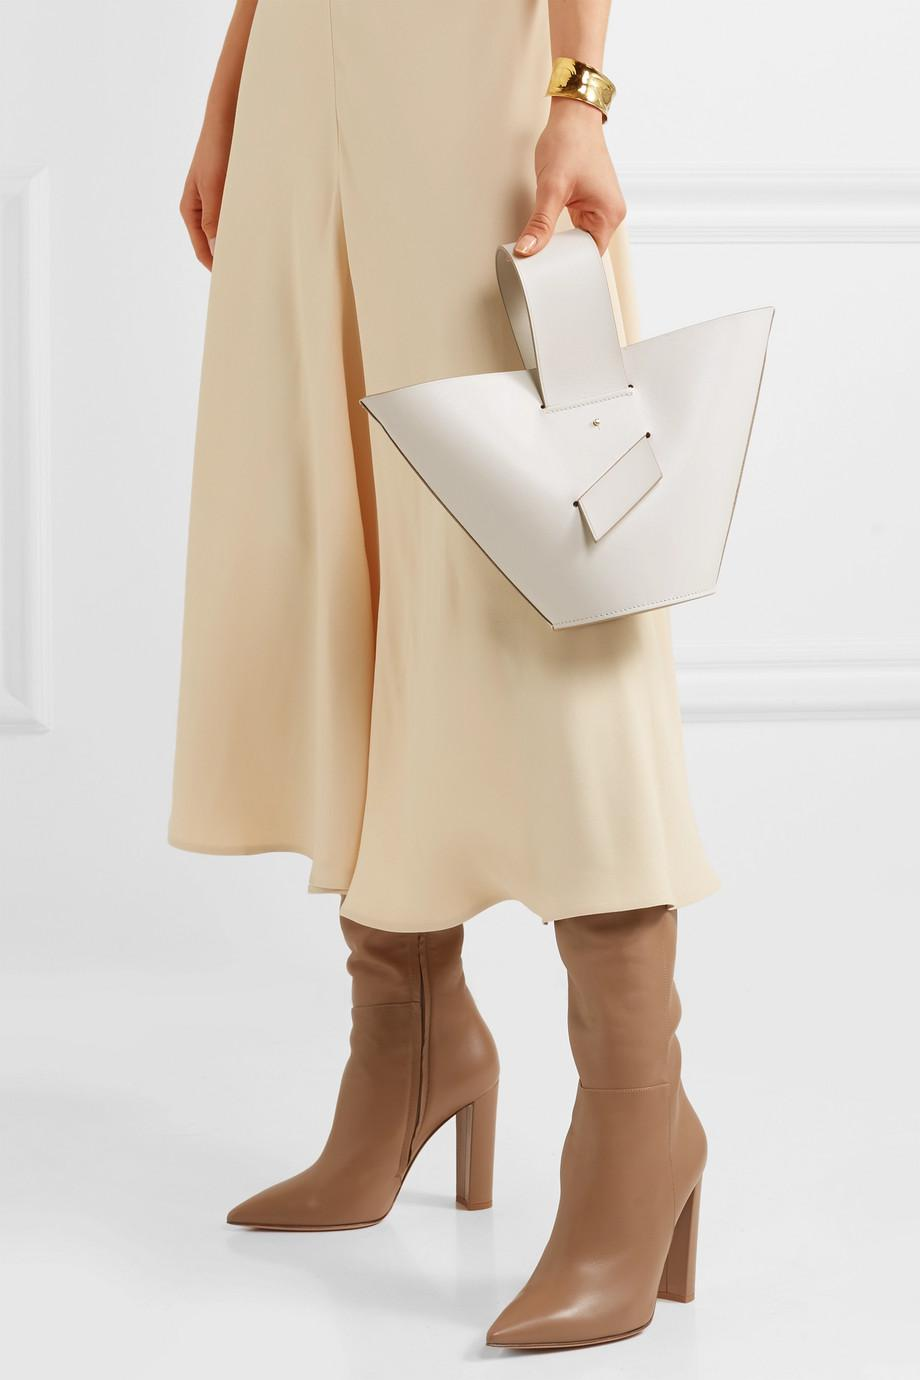 Amphora Leather Tote - White Carolina Santo Domingo Cheap From China Shop Offer Shopping Online Cheap Price Purchase Cheap For Sale For Sale 5Ue5zL